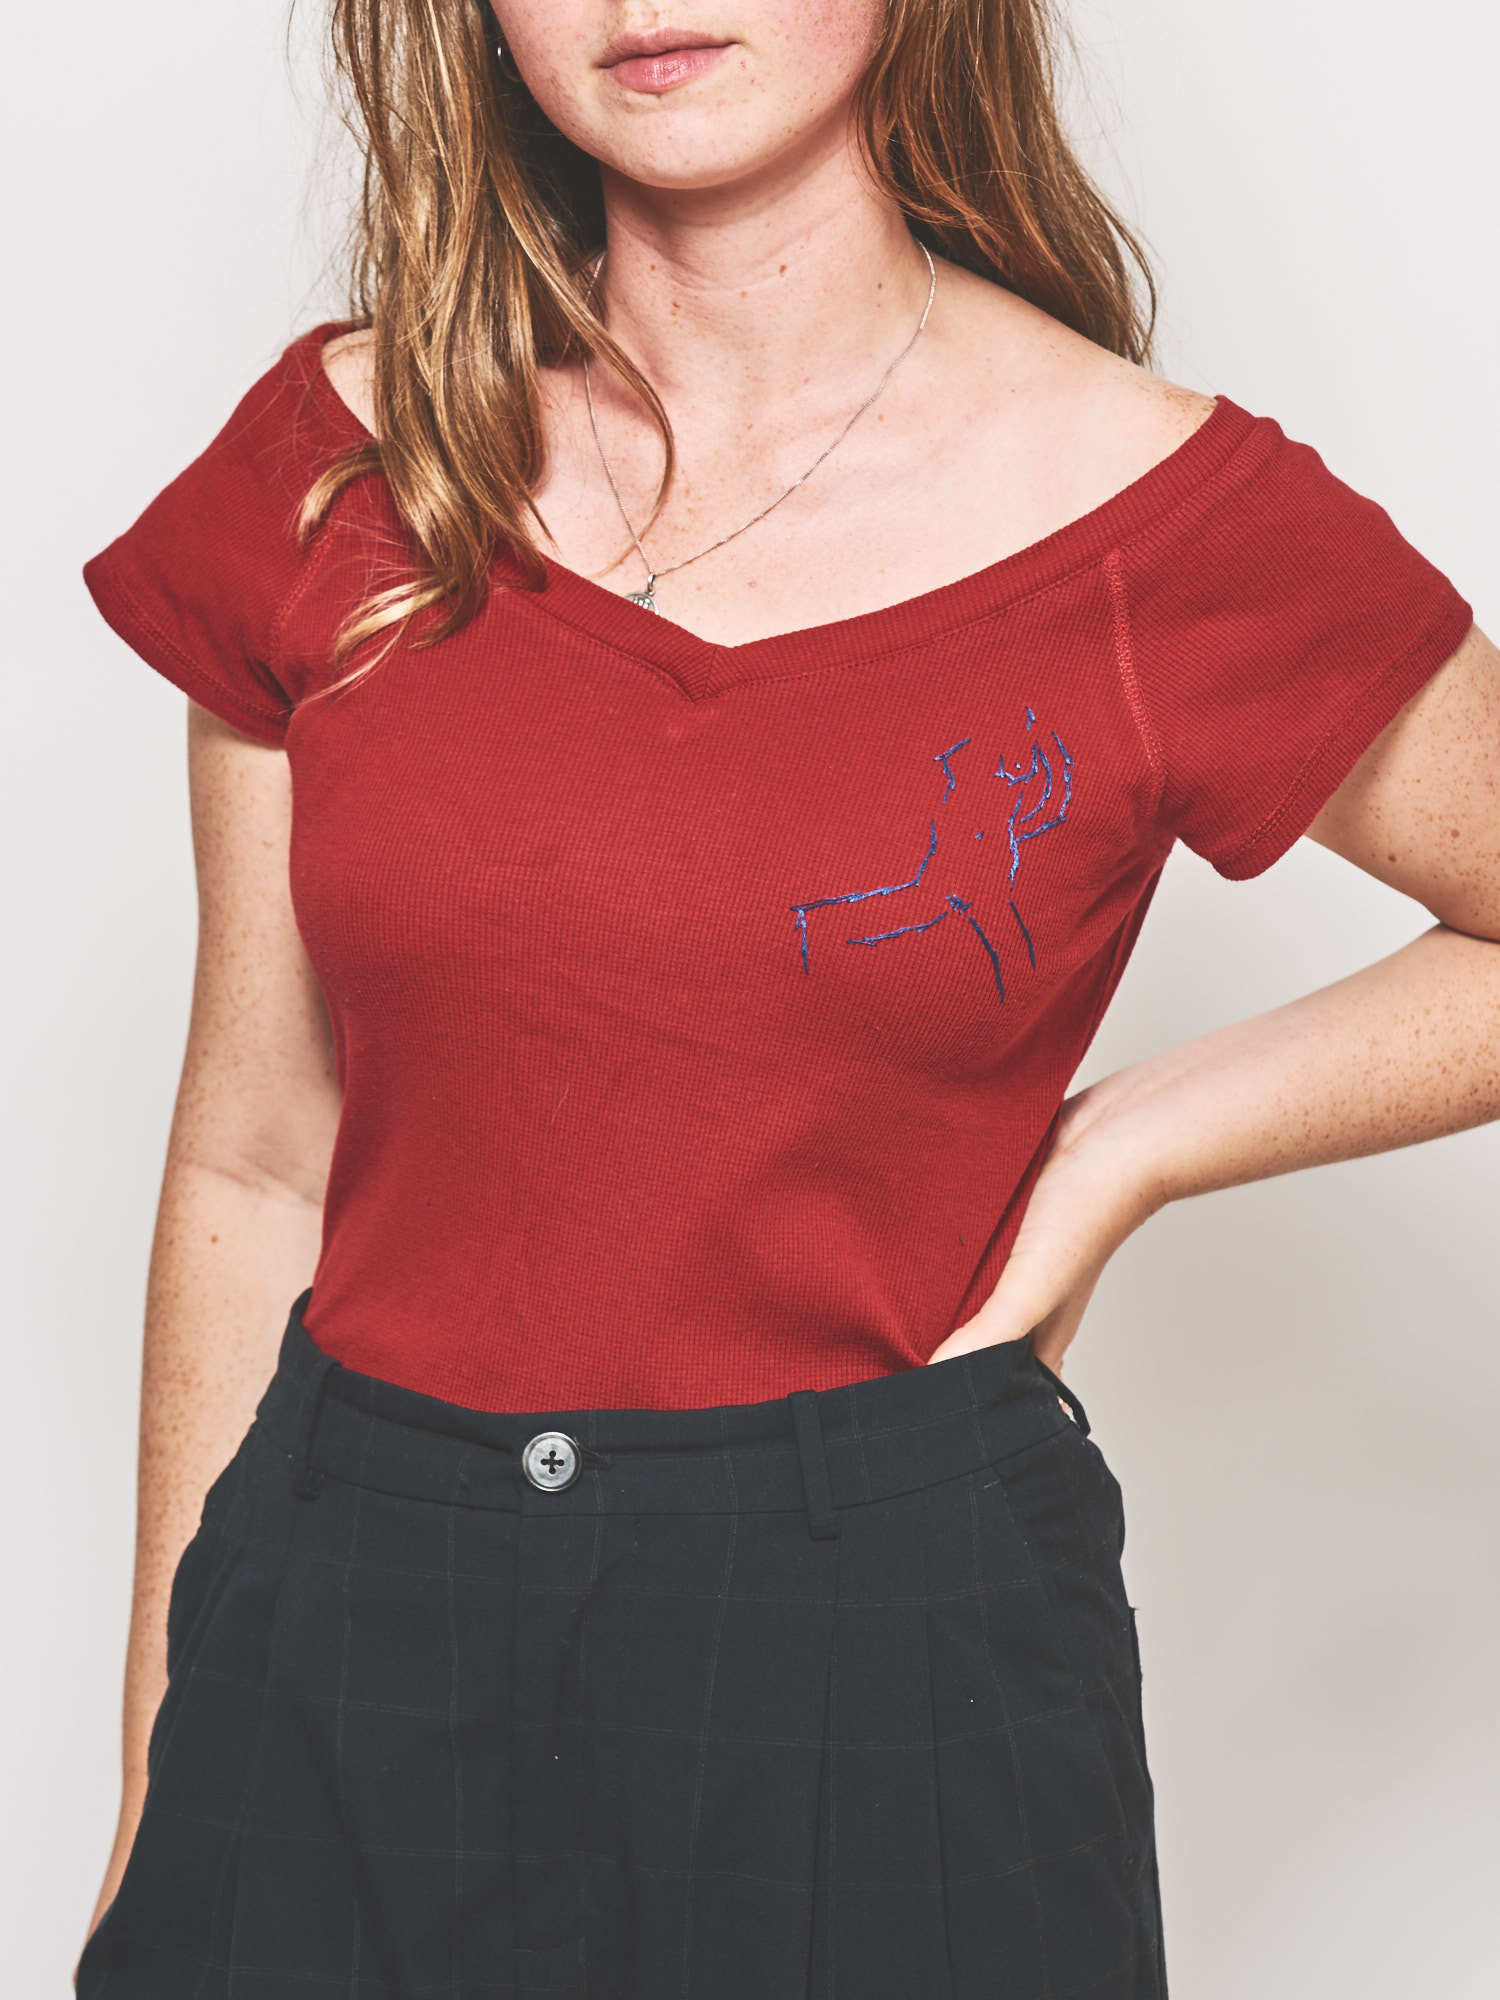 The Blue Woman Spreads on Red Shirt 69696